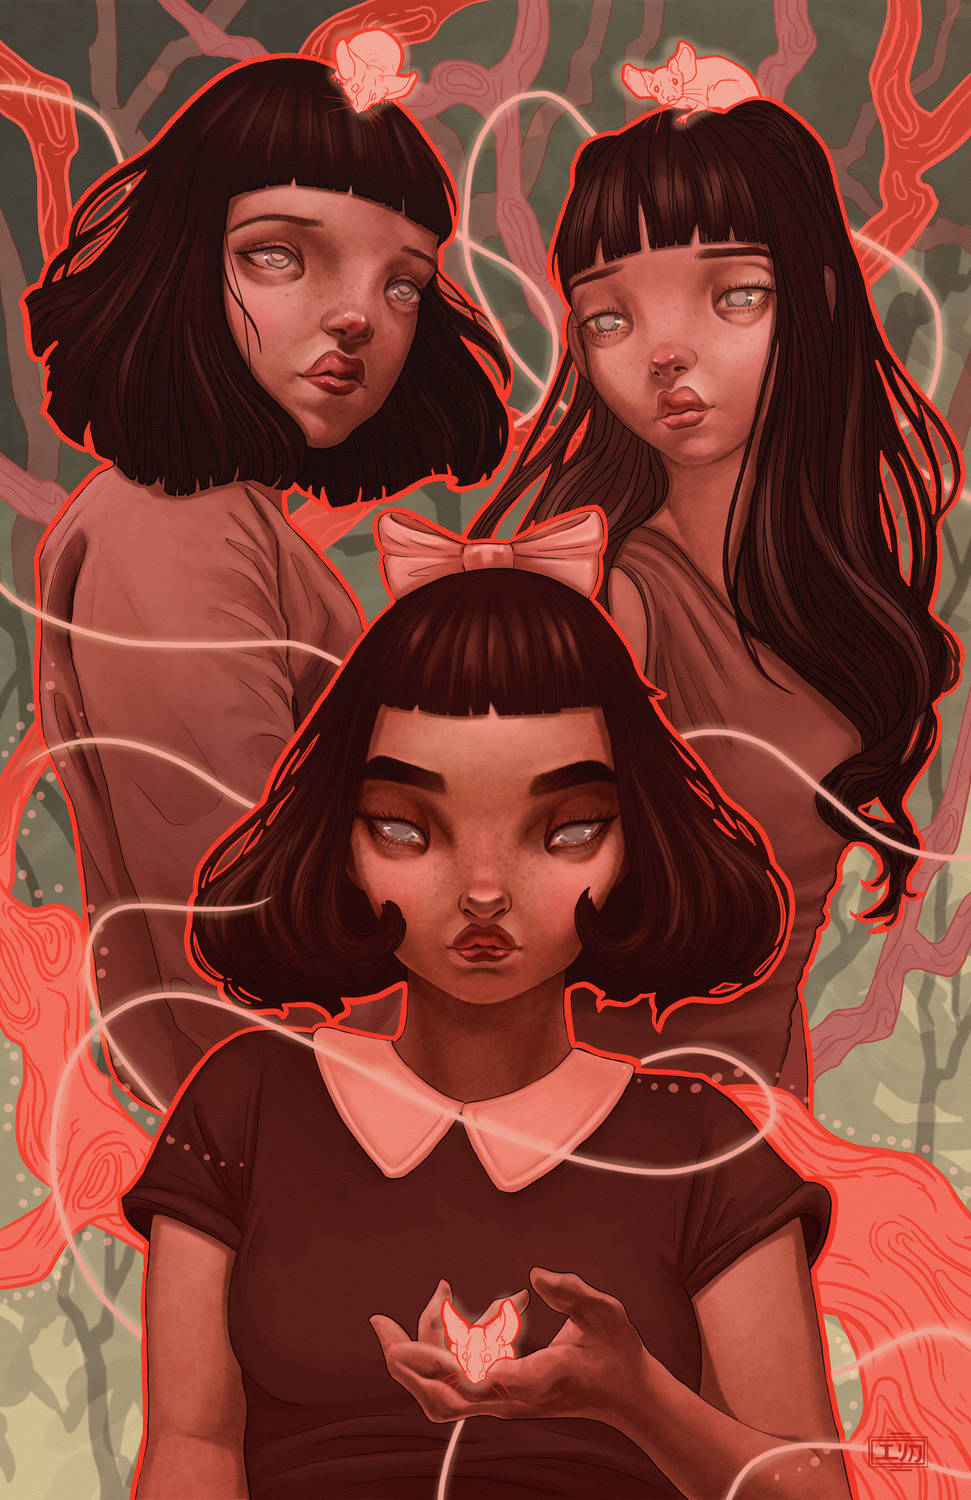 Three Blind Sisters Artwork by Erica Willey